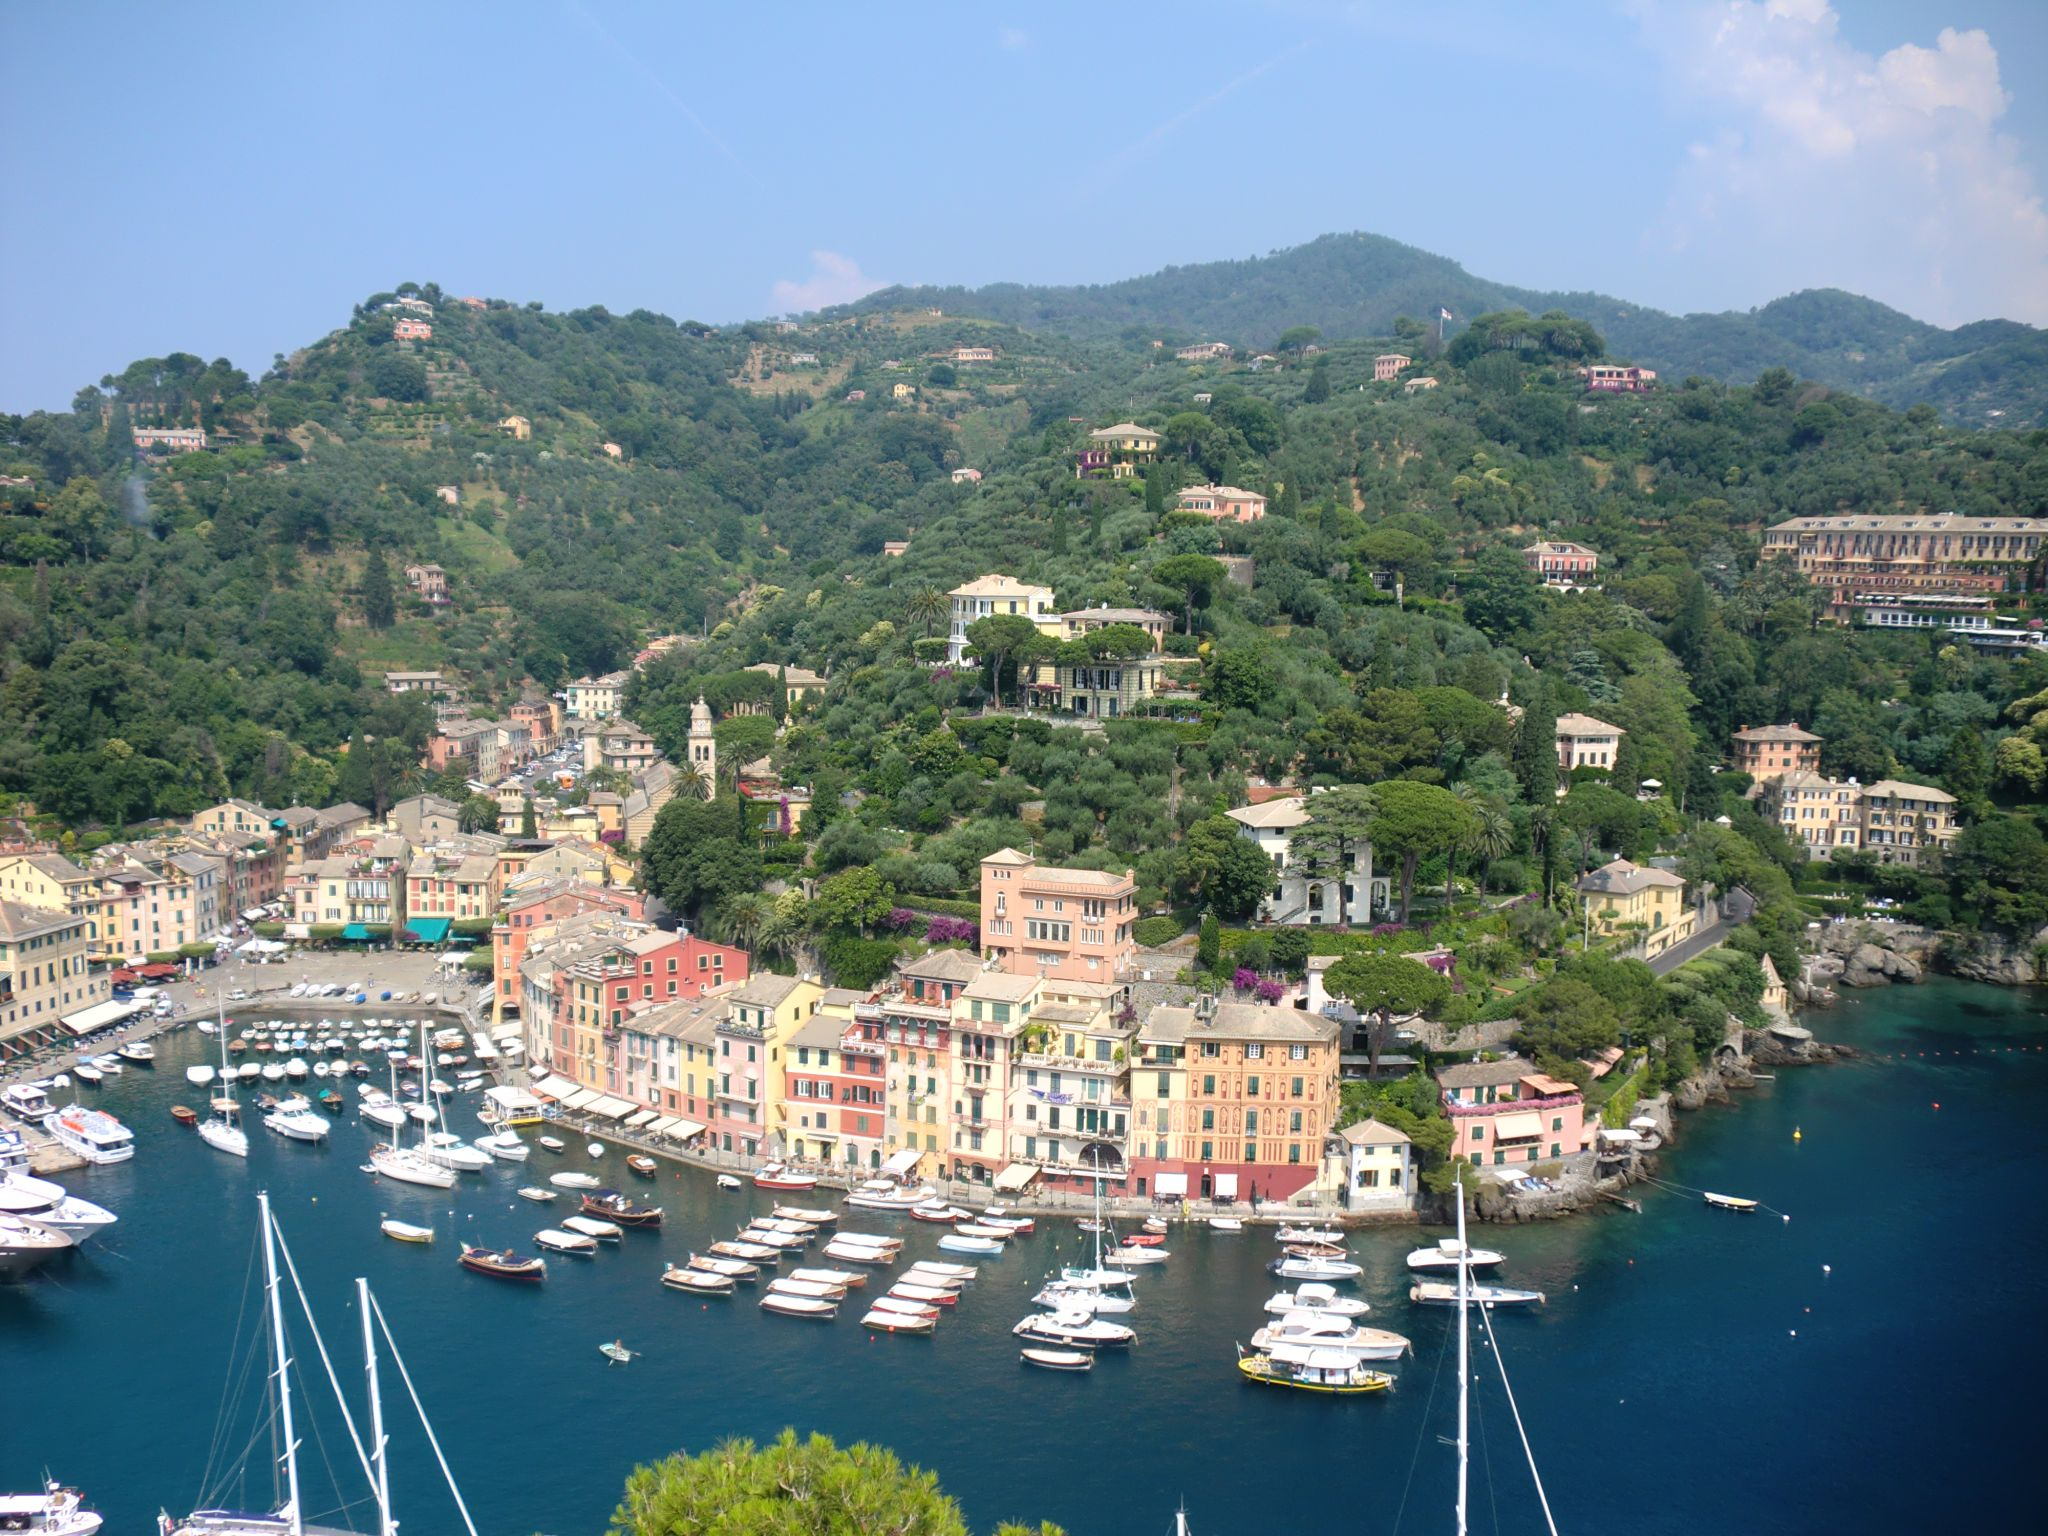 Portofino 46 - Portofino: a small pearl on the sea